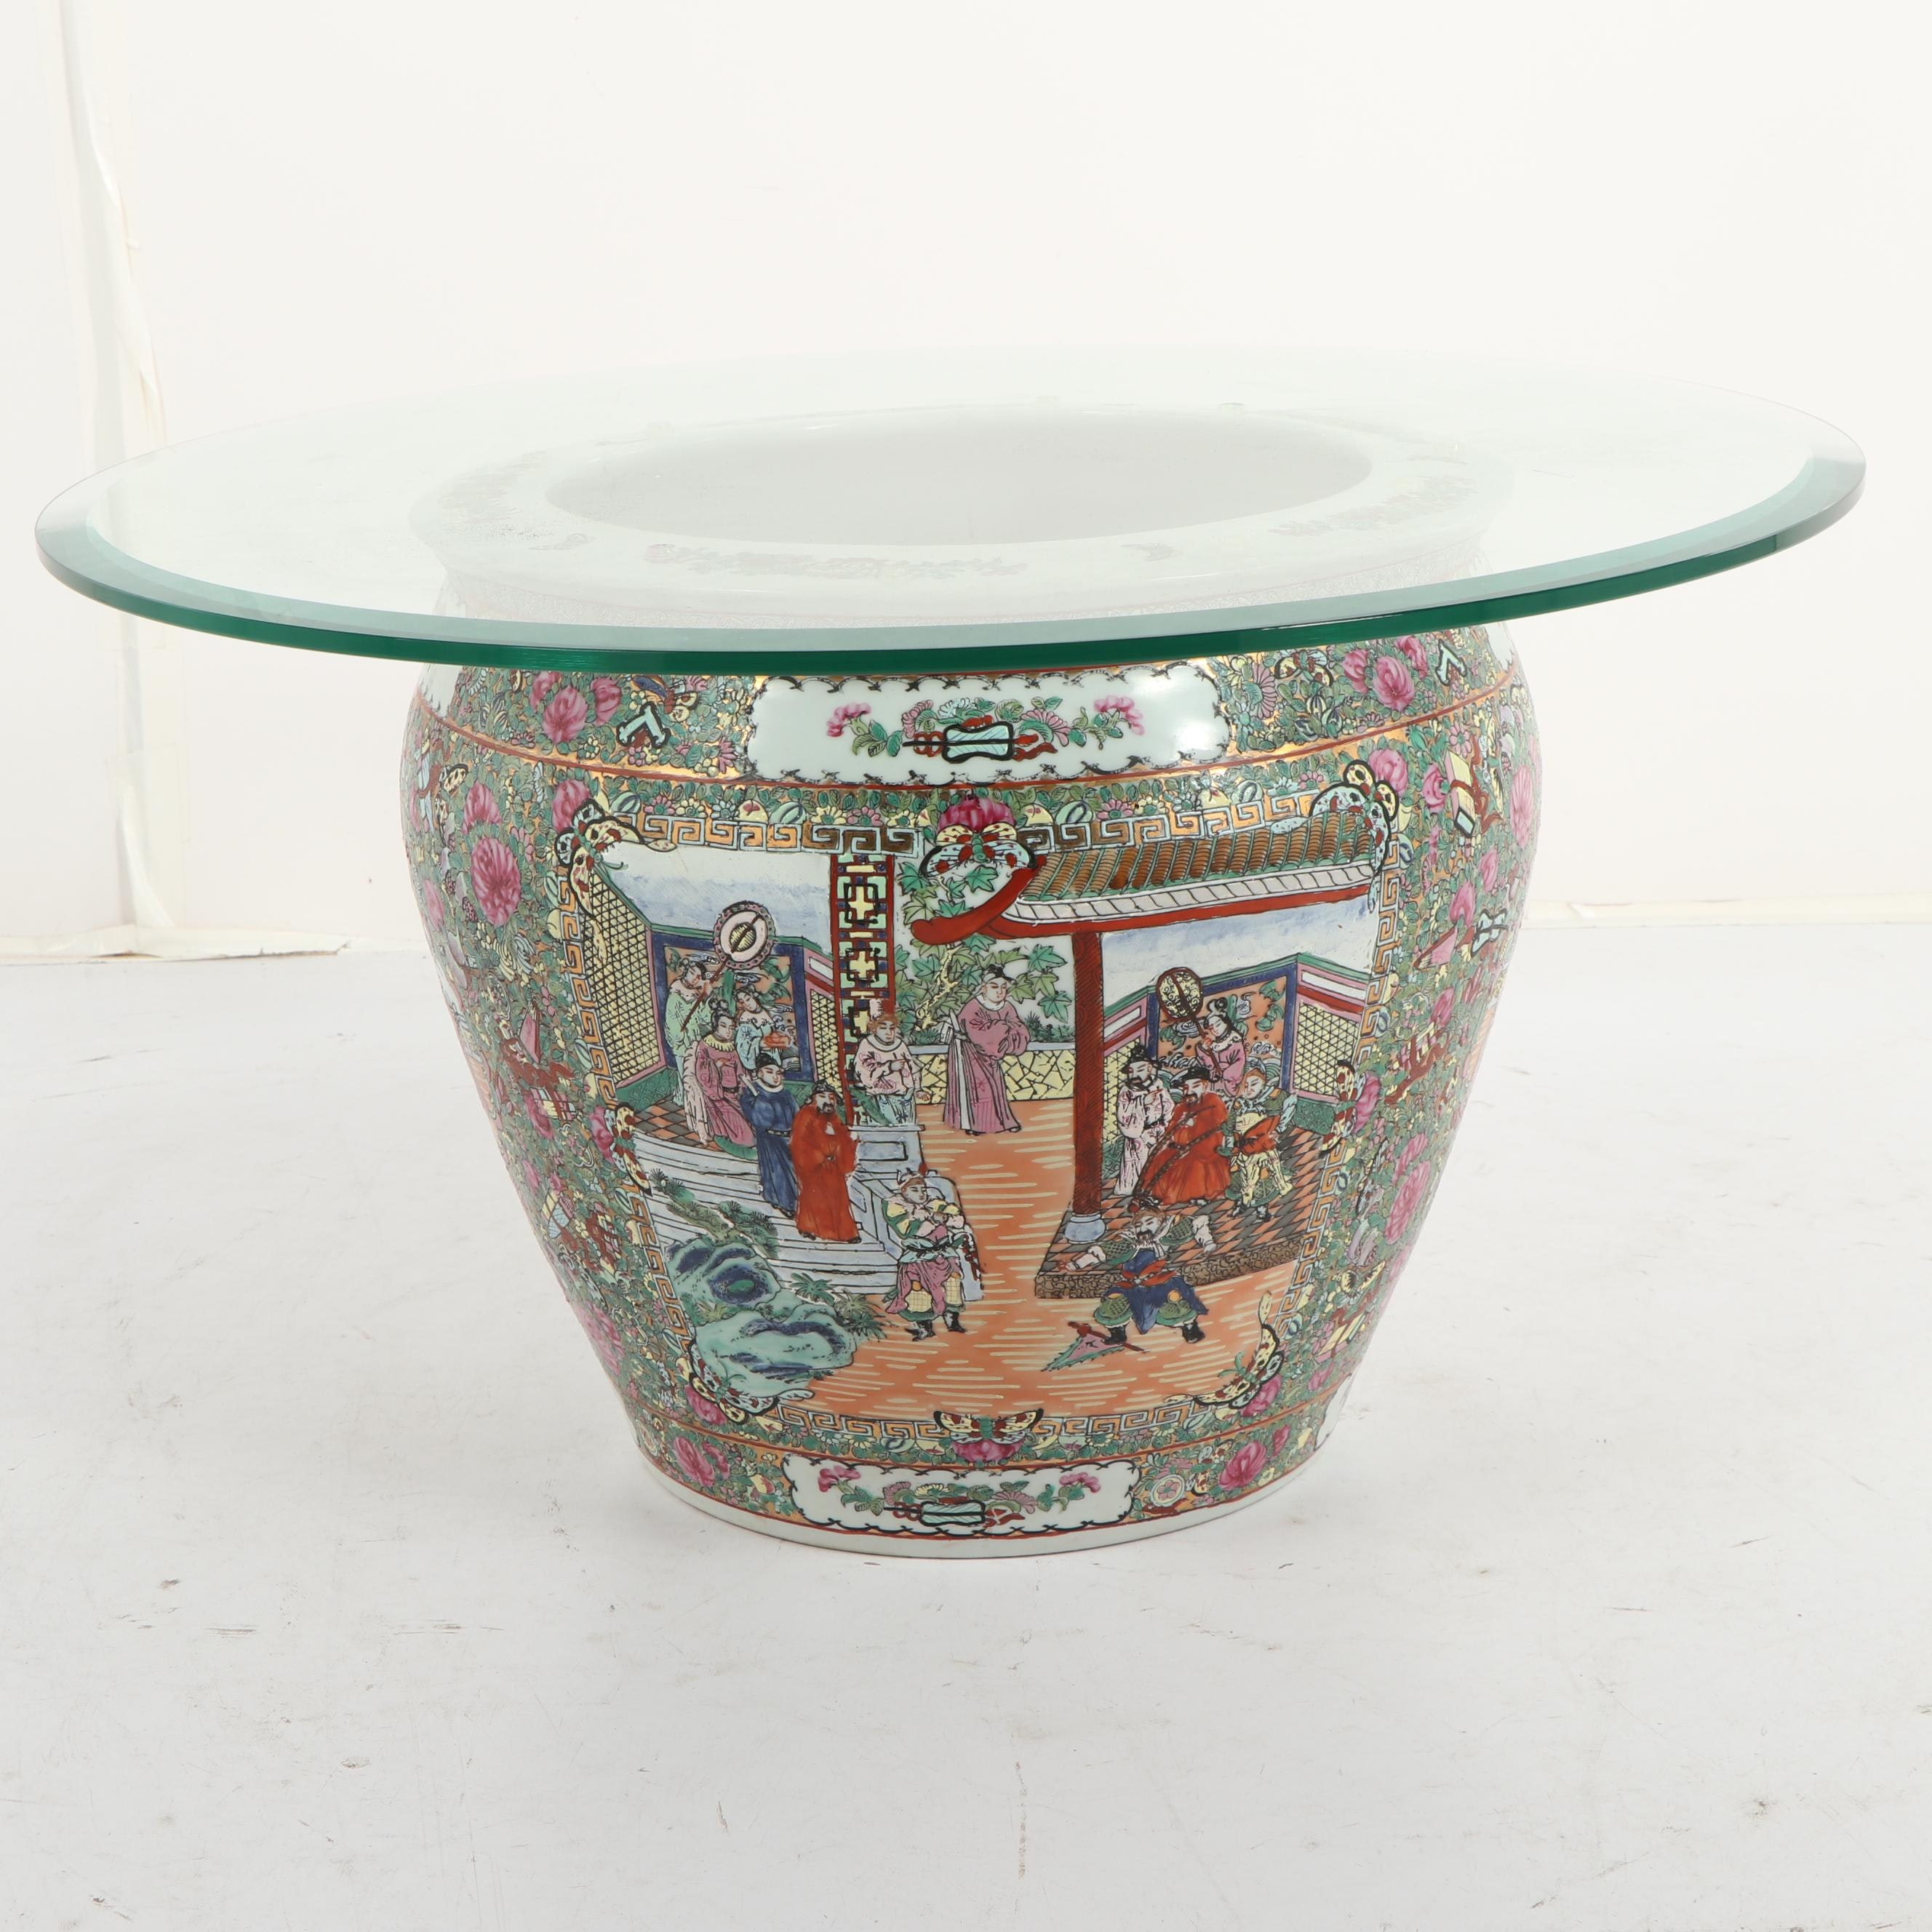 Chinese Glass Top Occasional Table with Ceramic Base, Mid 20th Century